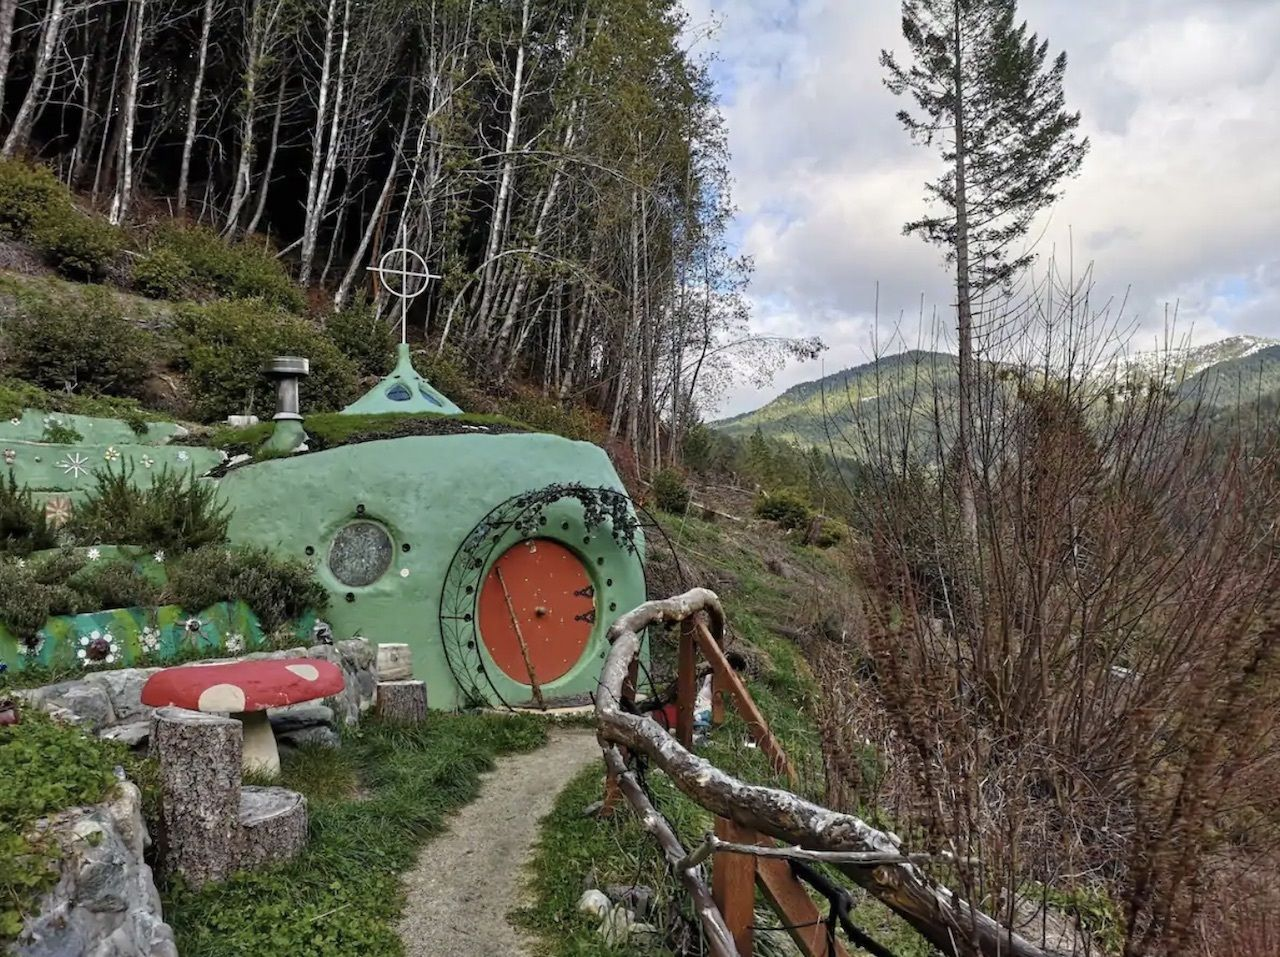 hobbit-house-airbnbs-near-redwoods-national-park, Airbnbs near redwoods national park